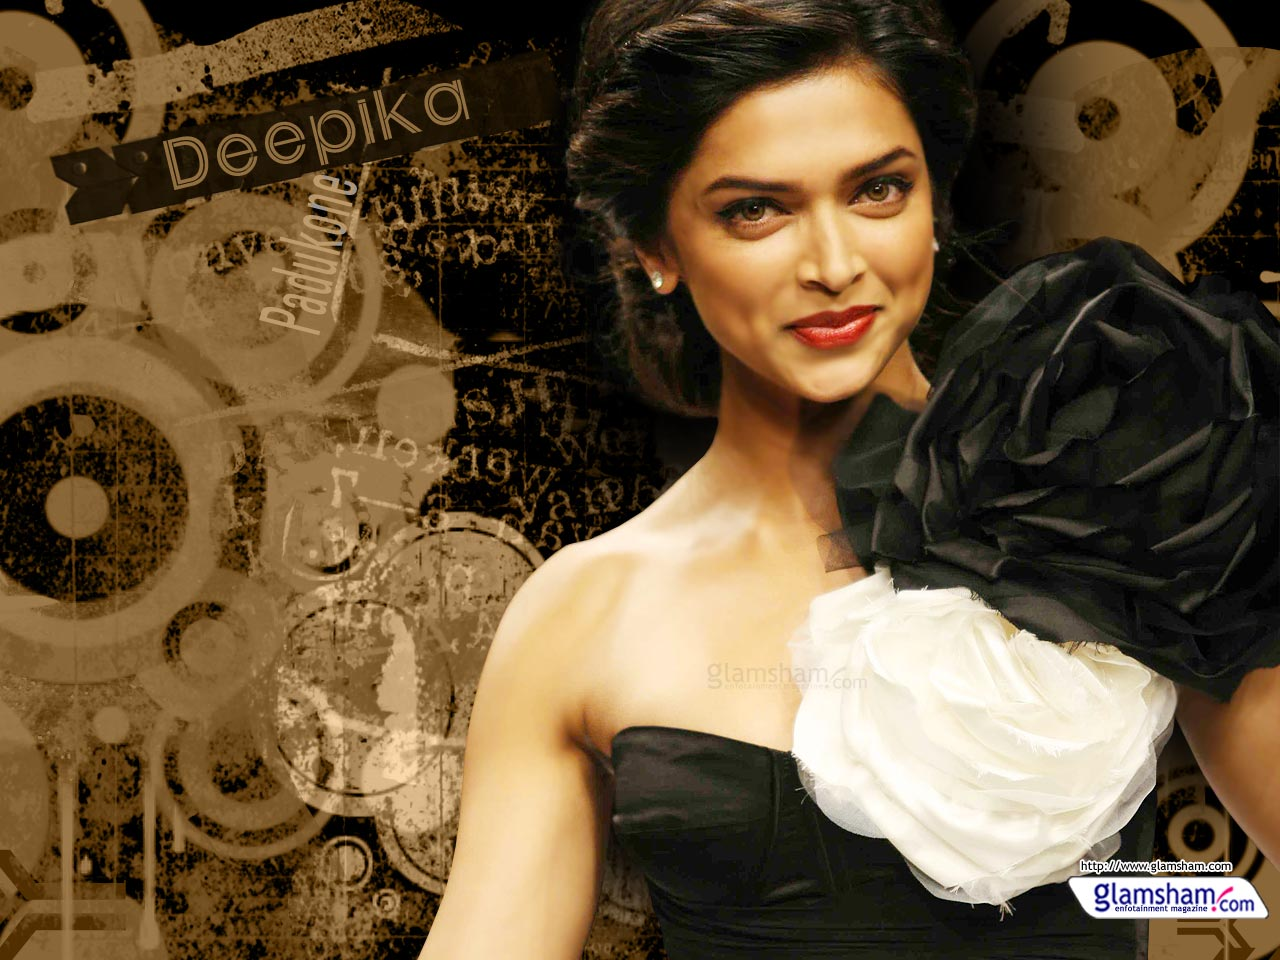 Ye Jawani He Diwani Pagalworld Deepika Padukune Wallpapers Deepika Padukone Hot Wallpapers